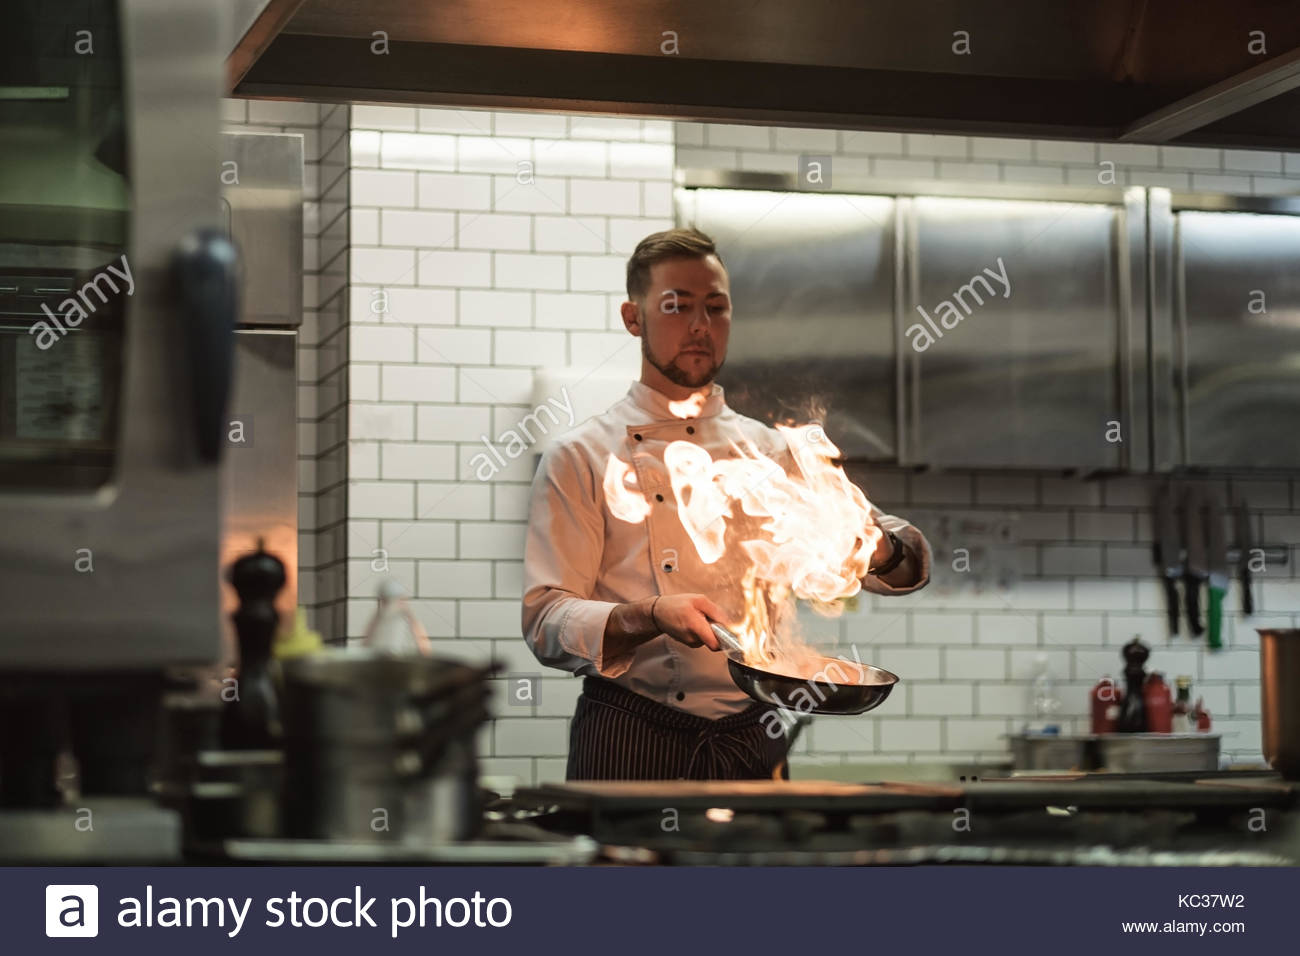 A man cooks cooking deep fryers in a kitchen fire. - Stock Image